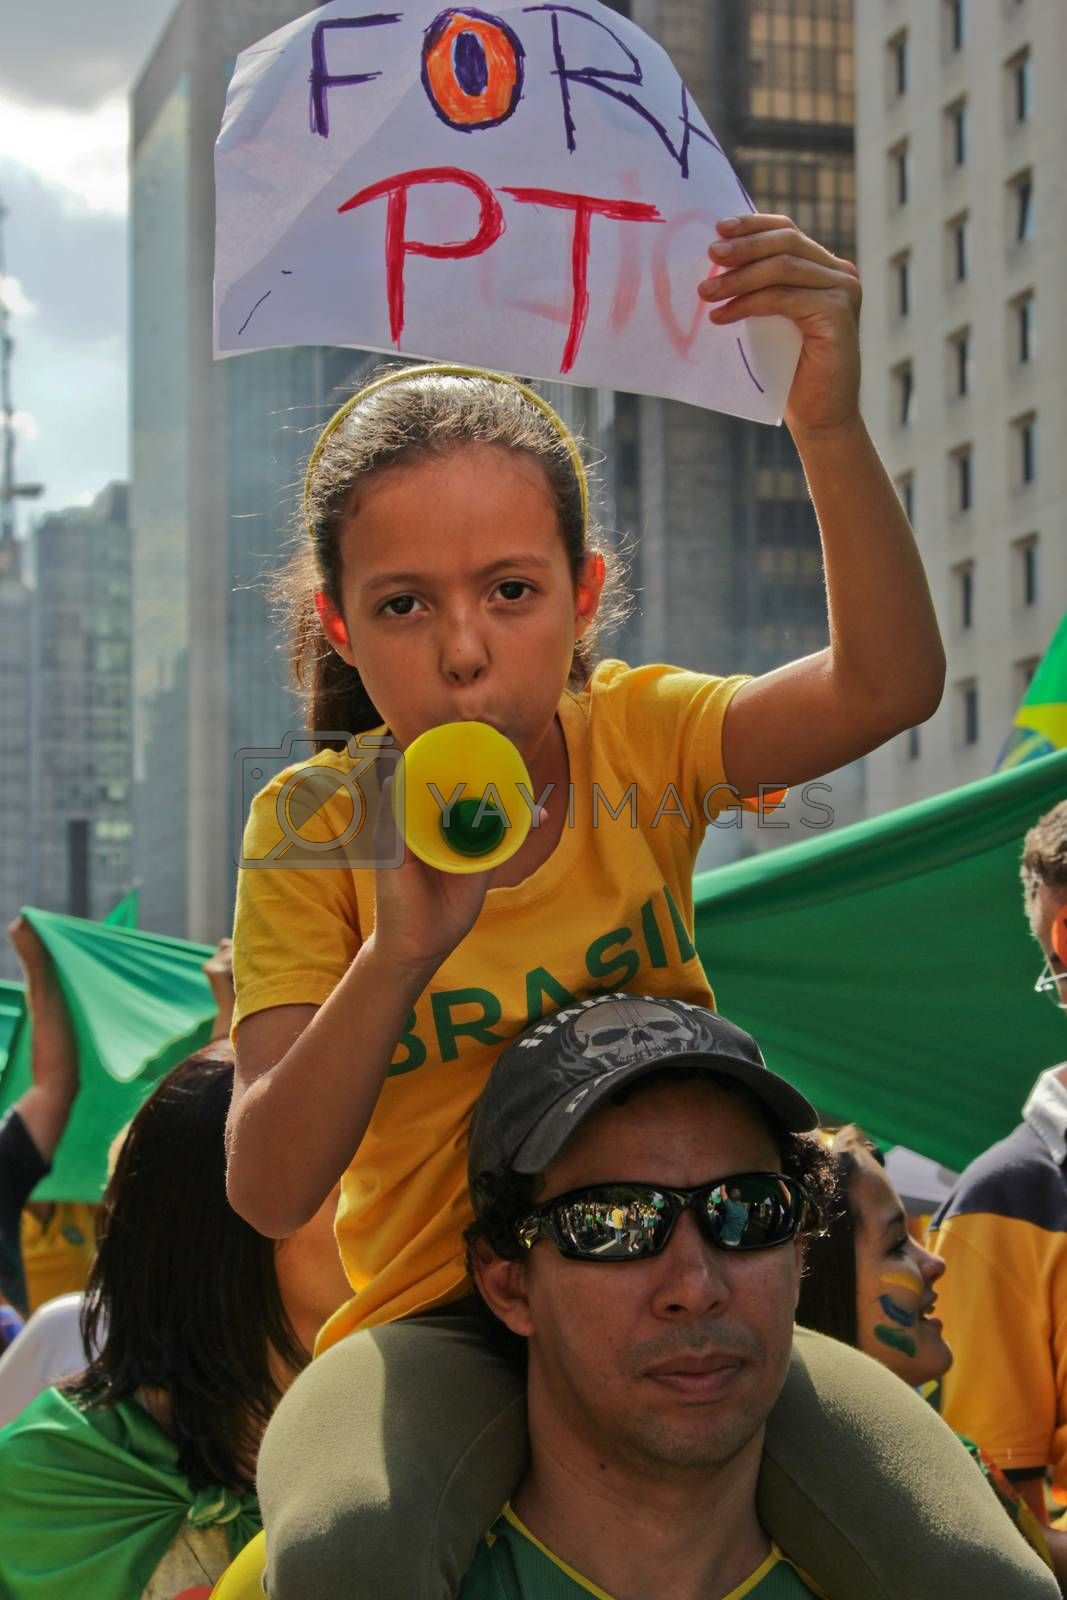 SAO PAULO, BRAZIL August 16, 2015: An unidentified man with a girl with a poster in the protest against federal government corruption in Sao Paulo Brazil.